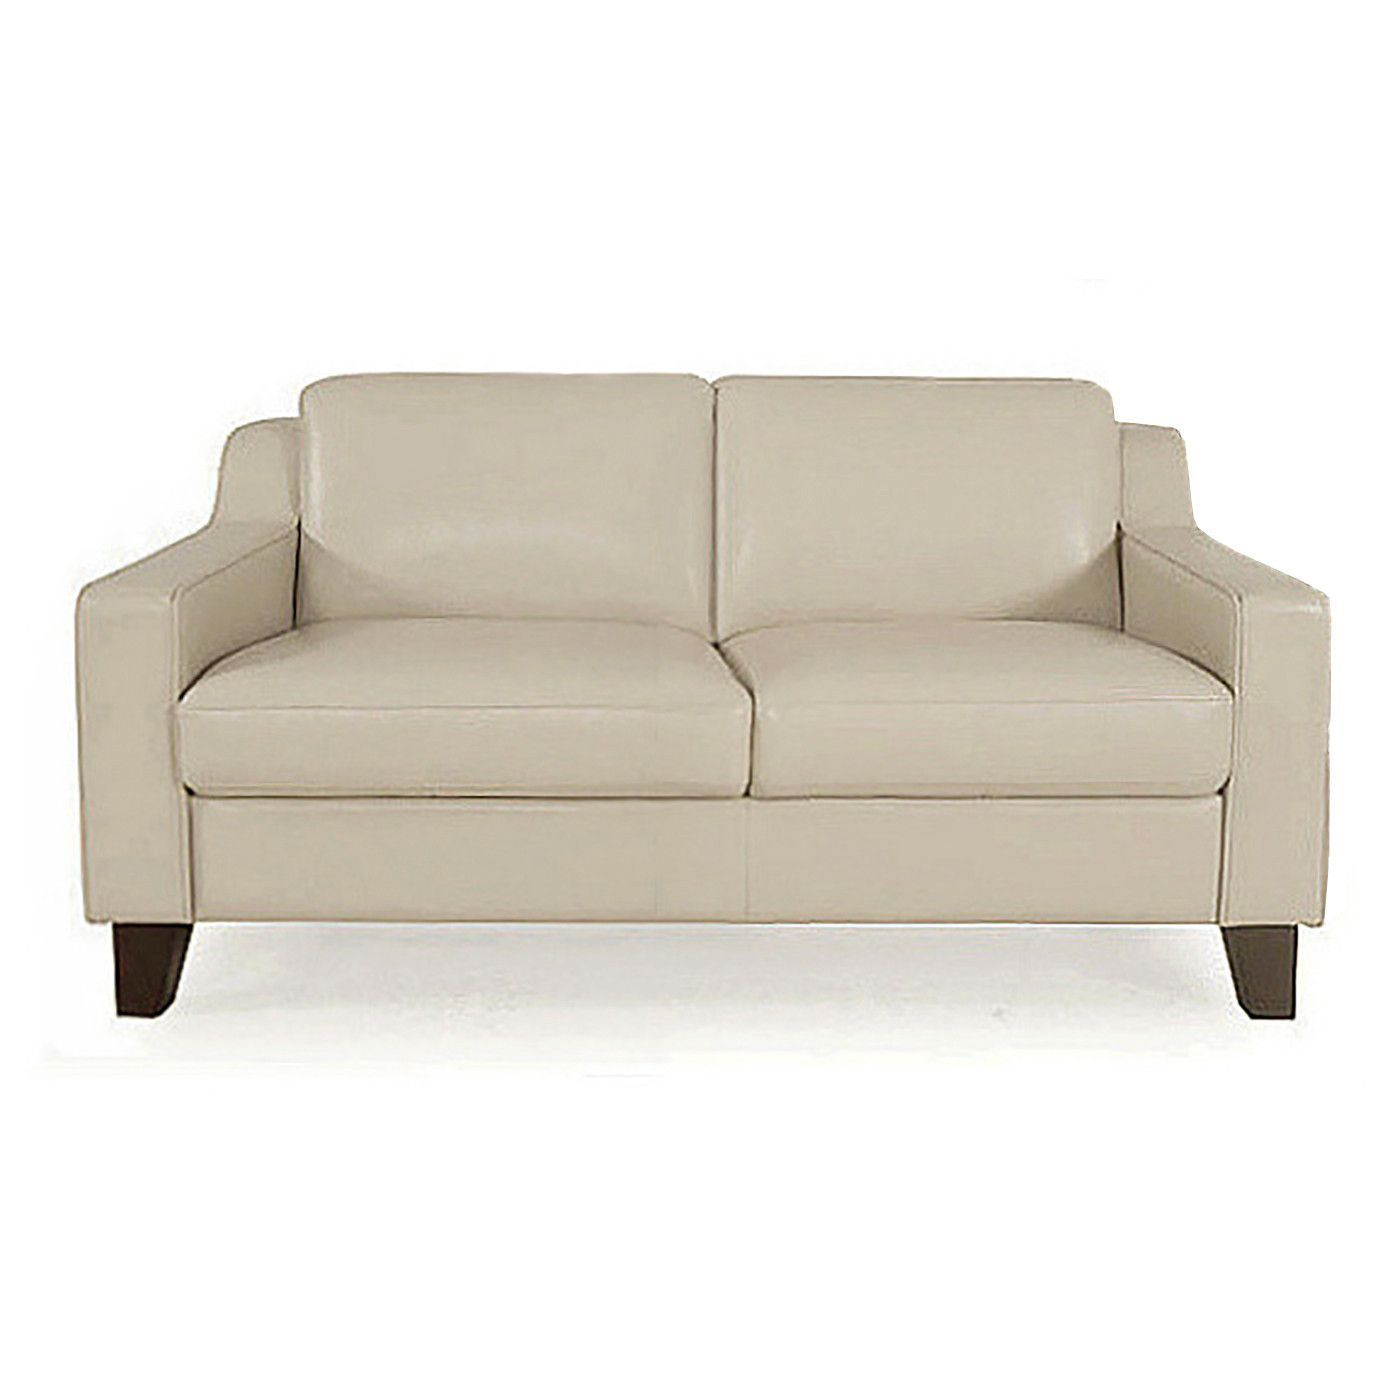 Barber Leather Apartment Size Sofa Tan Apartment Size Sofa Leather Loveseat Sofa